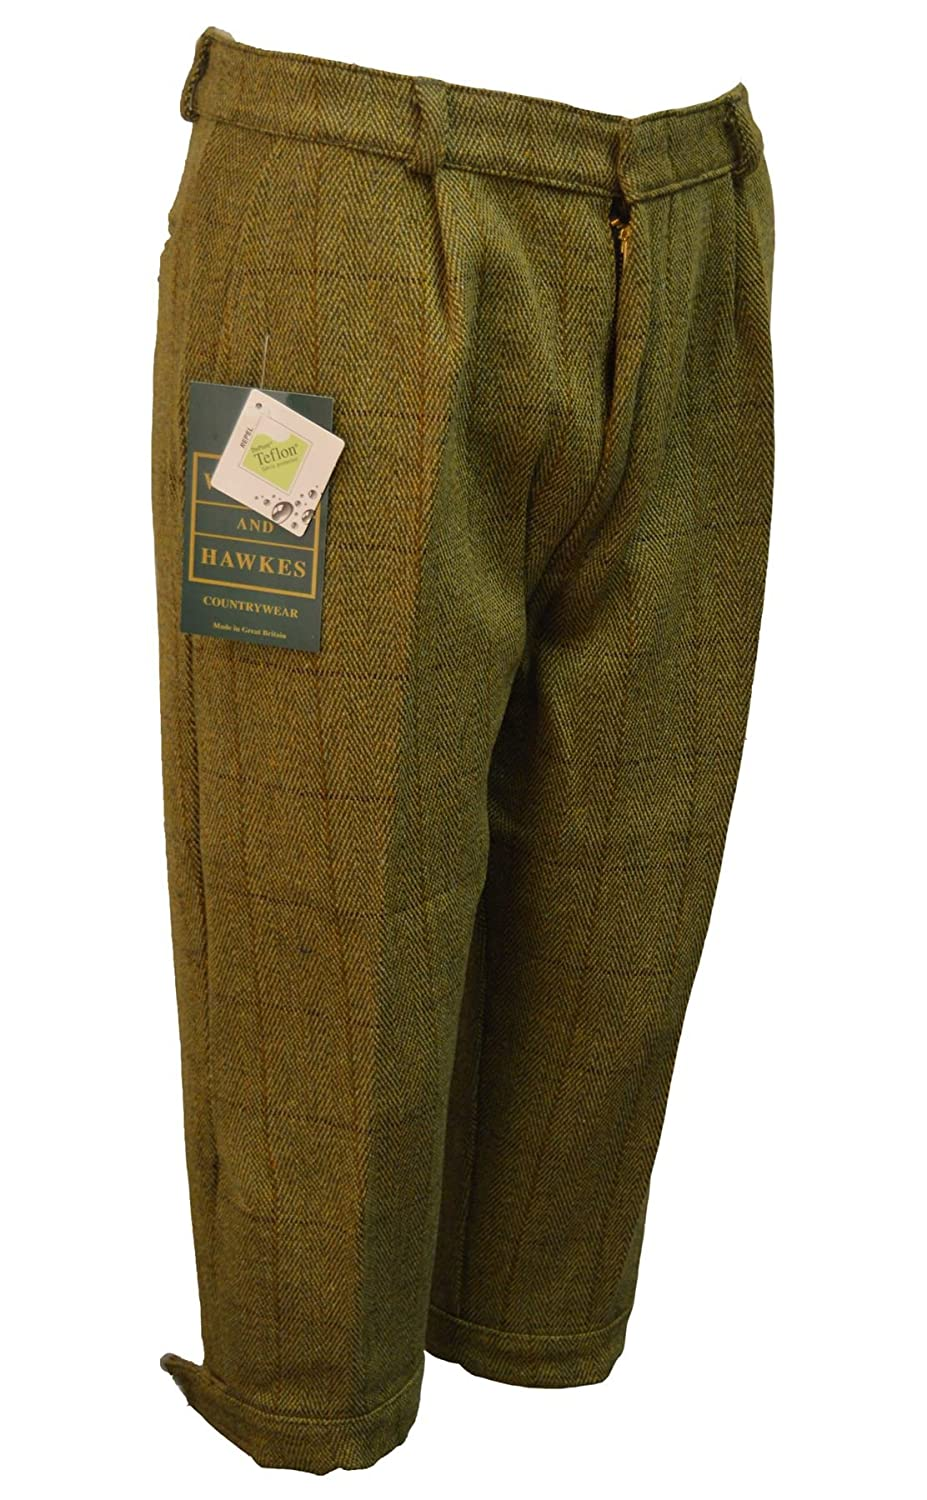 1930s Men's Costumes: Gangster, Clyde Barrow, Mummy, Dracula, Frankenstein Walker & Hawkes - Mens Derby Tweed Shooting Plus Fours LONG Breeks Trousers - Light Sage - 32-42 $76.99 AT vintagedancer.com